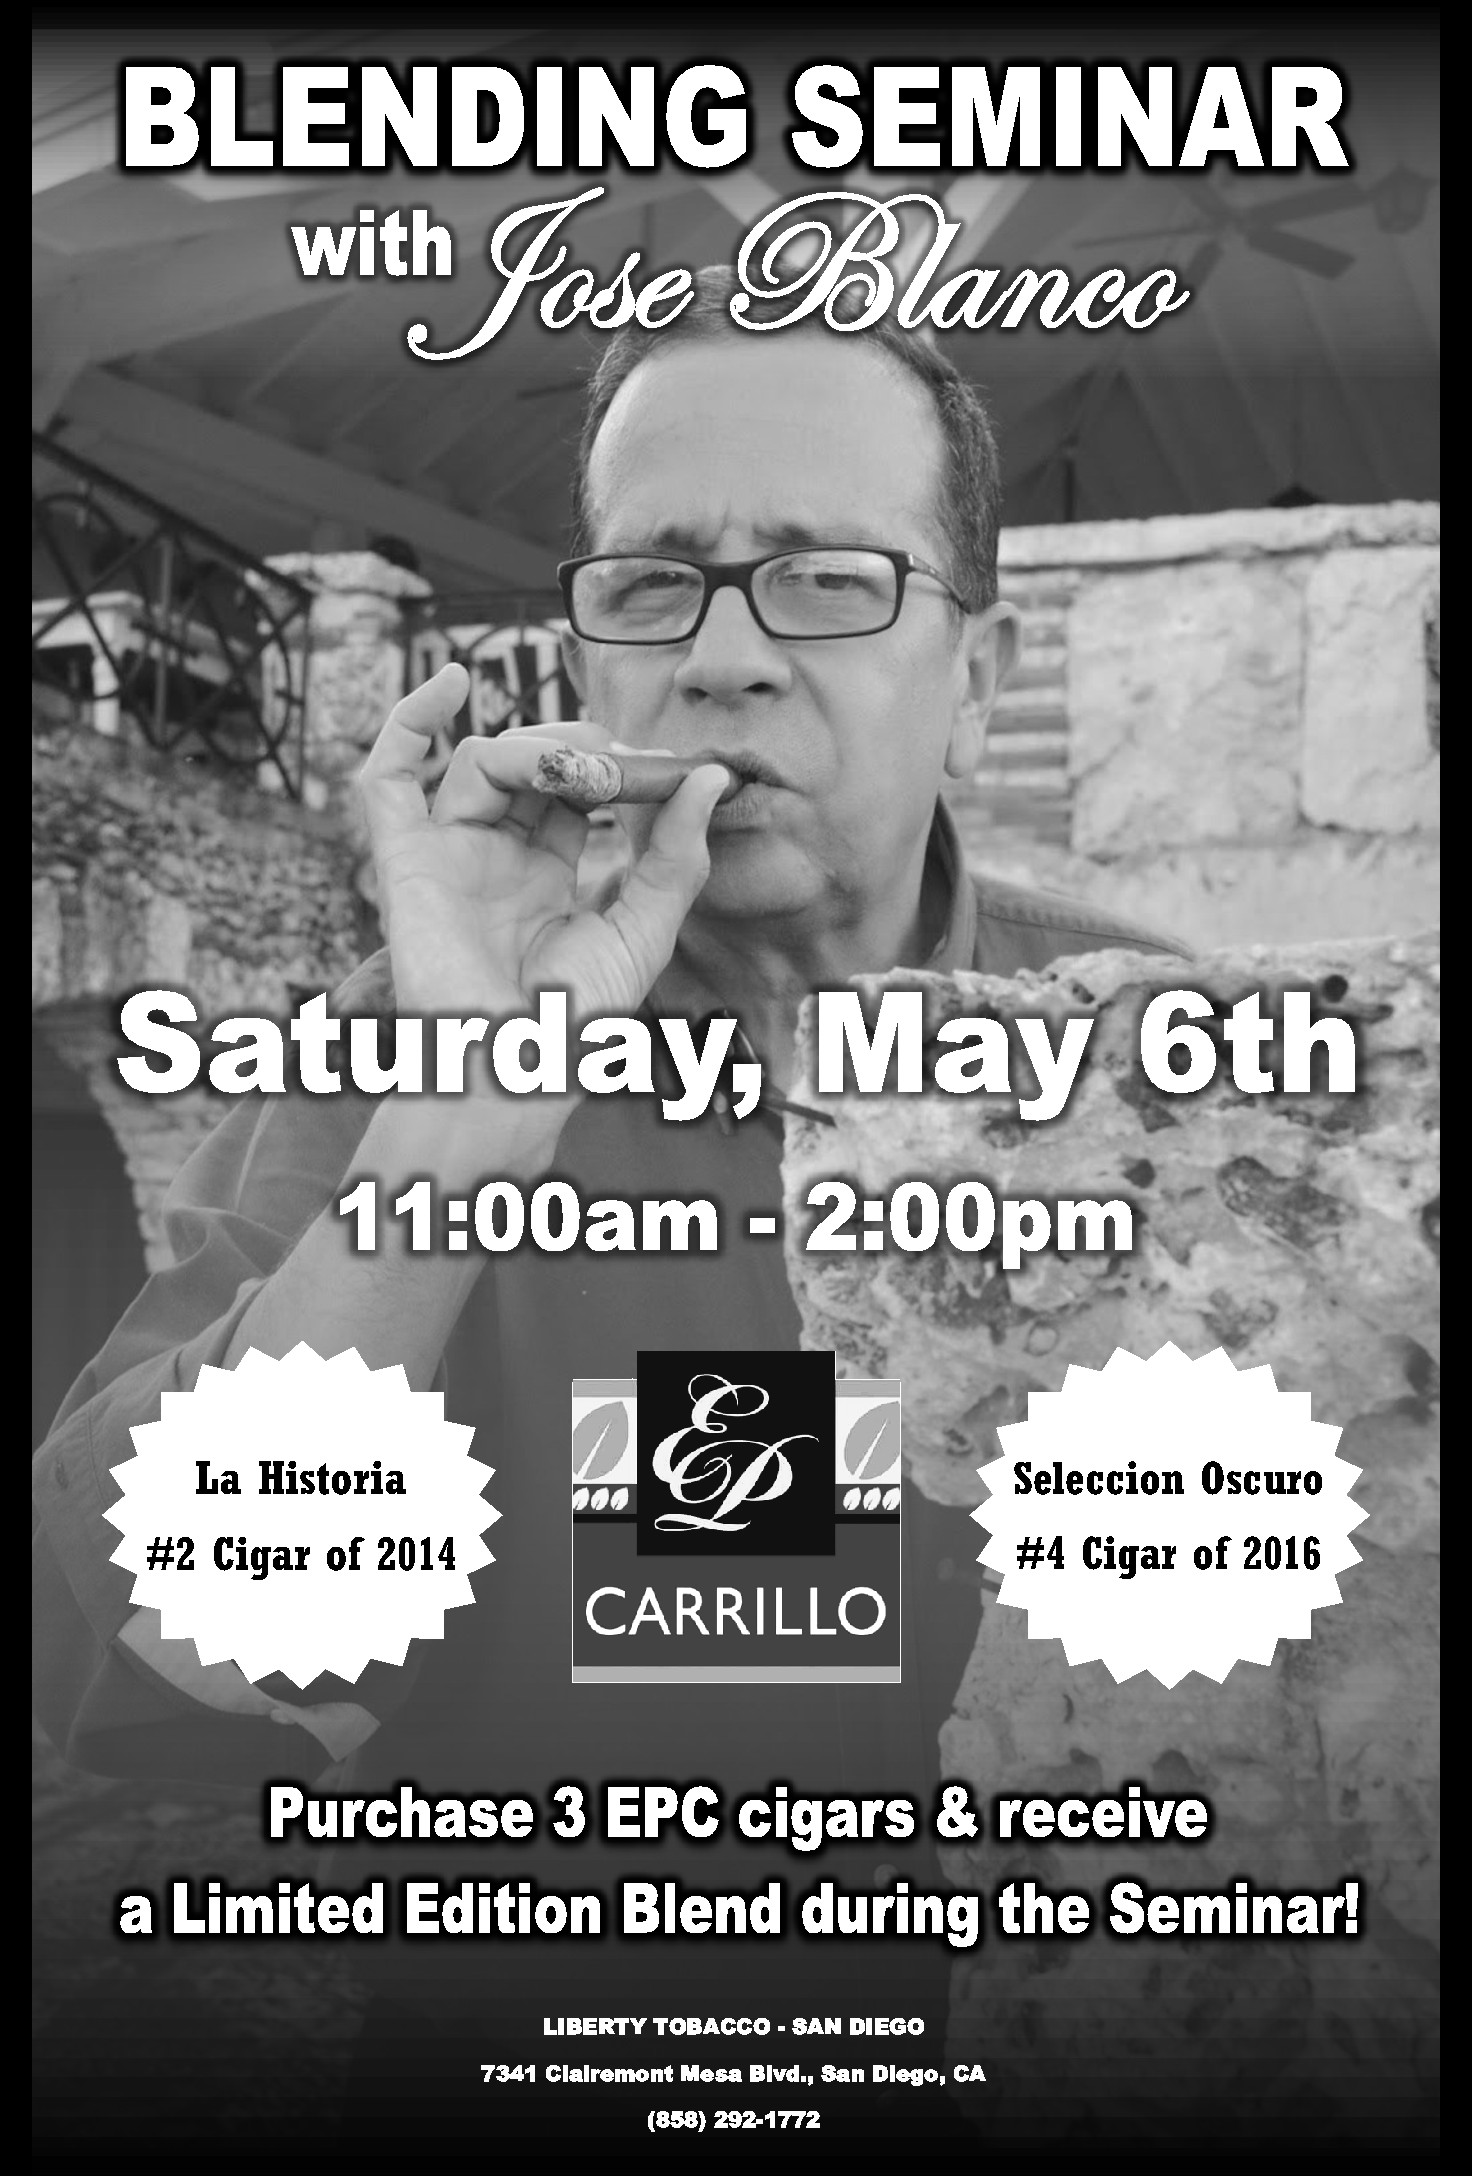 Meet Jose Blanco of EPC Cigars May 6th at Liberty Tobacco